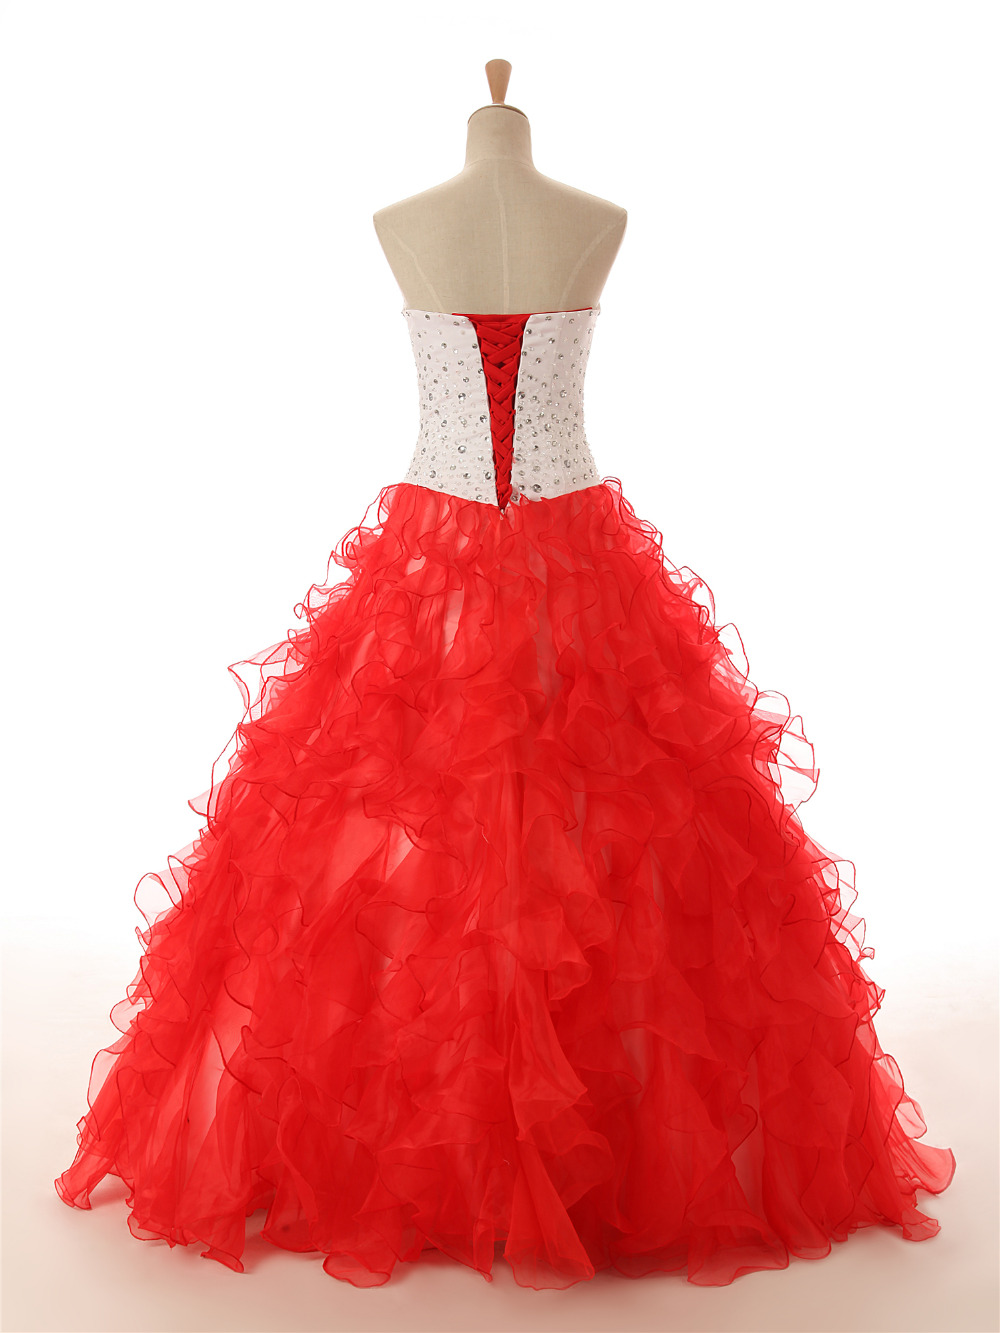 GSBRIDAL Light Blue Off the Shoulder Sweetheart Red Ruffle Skirt Beading Prom Dress